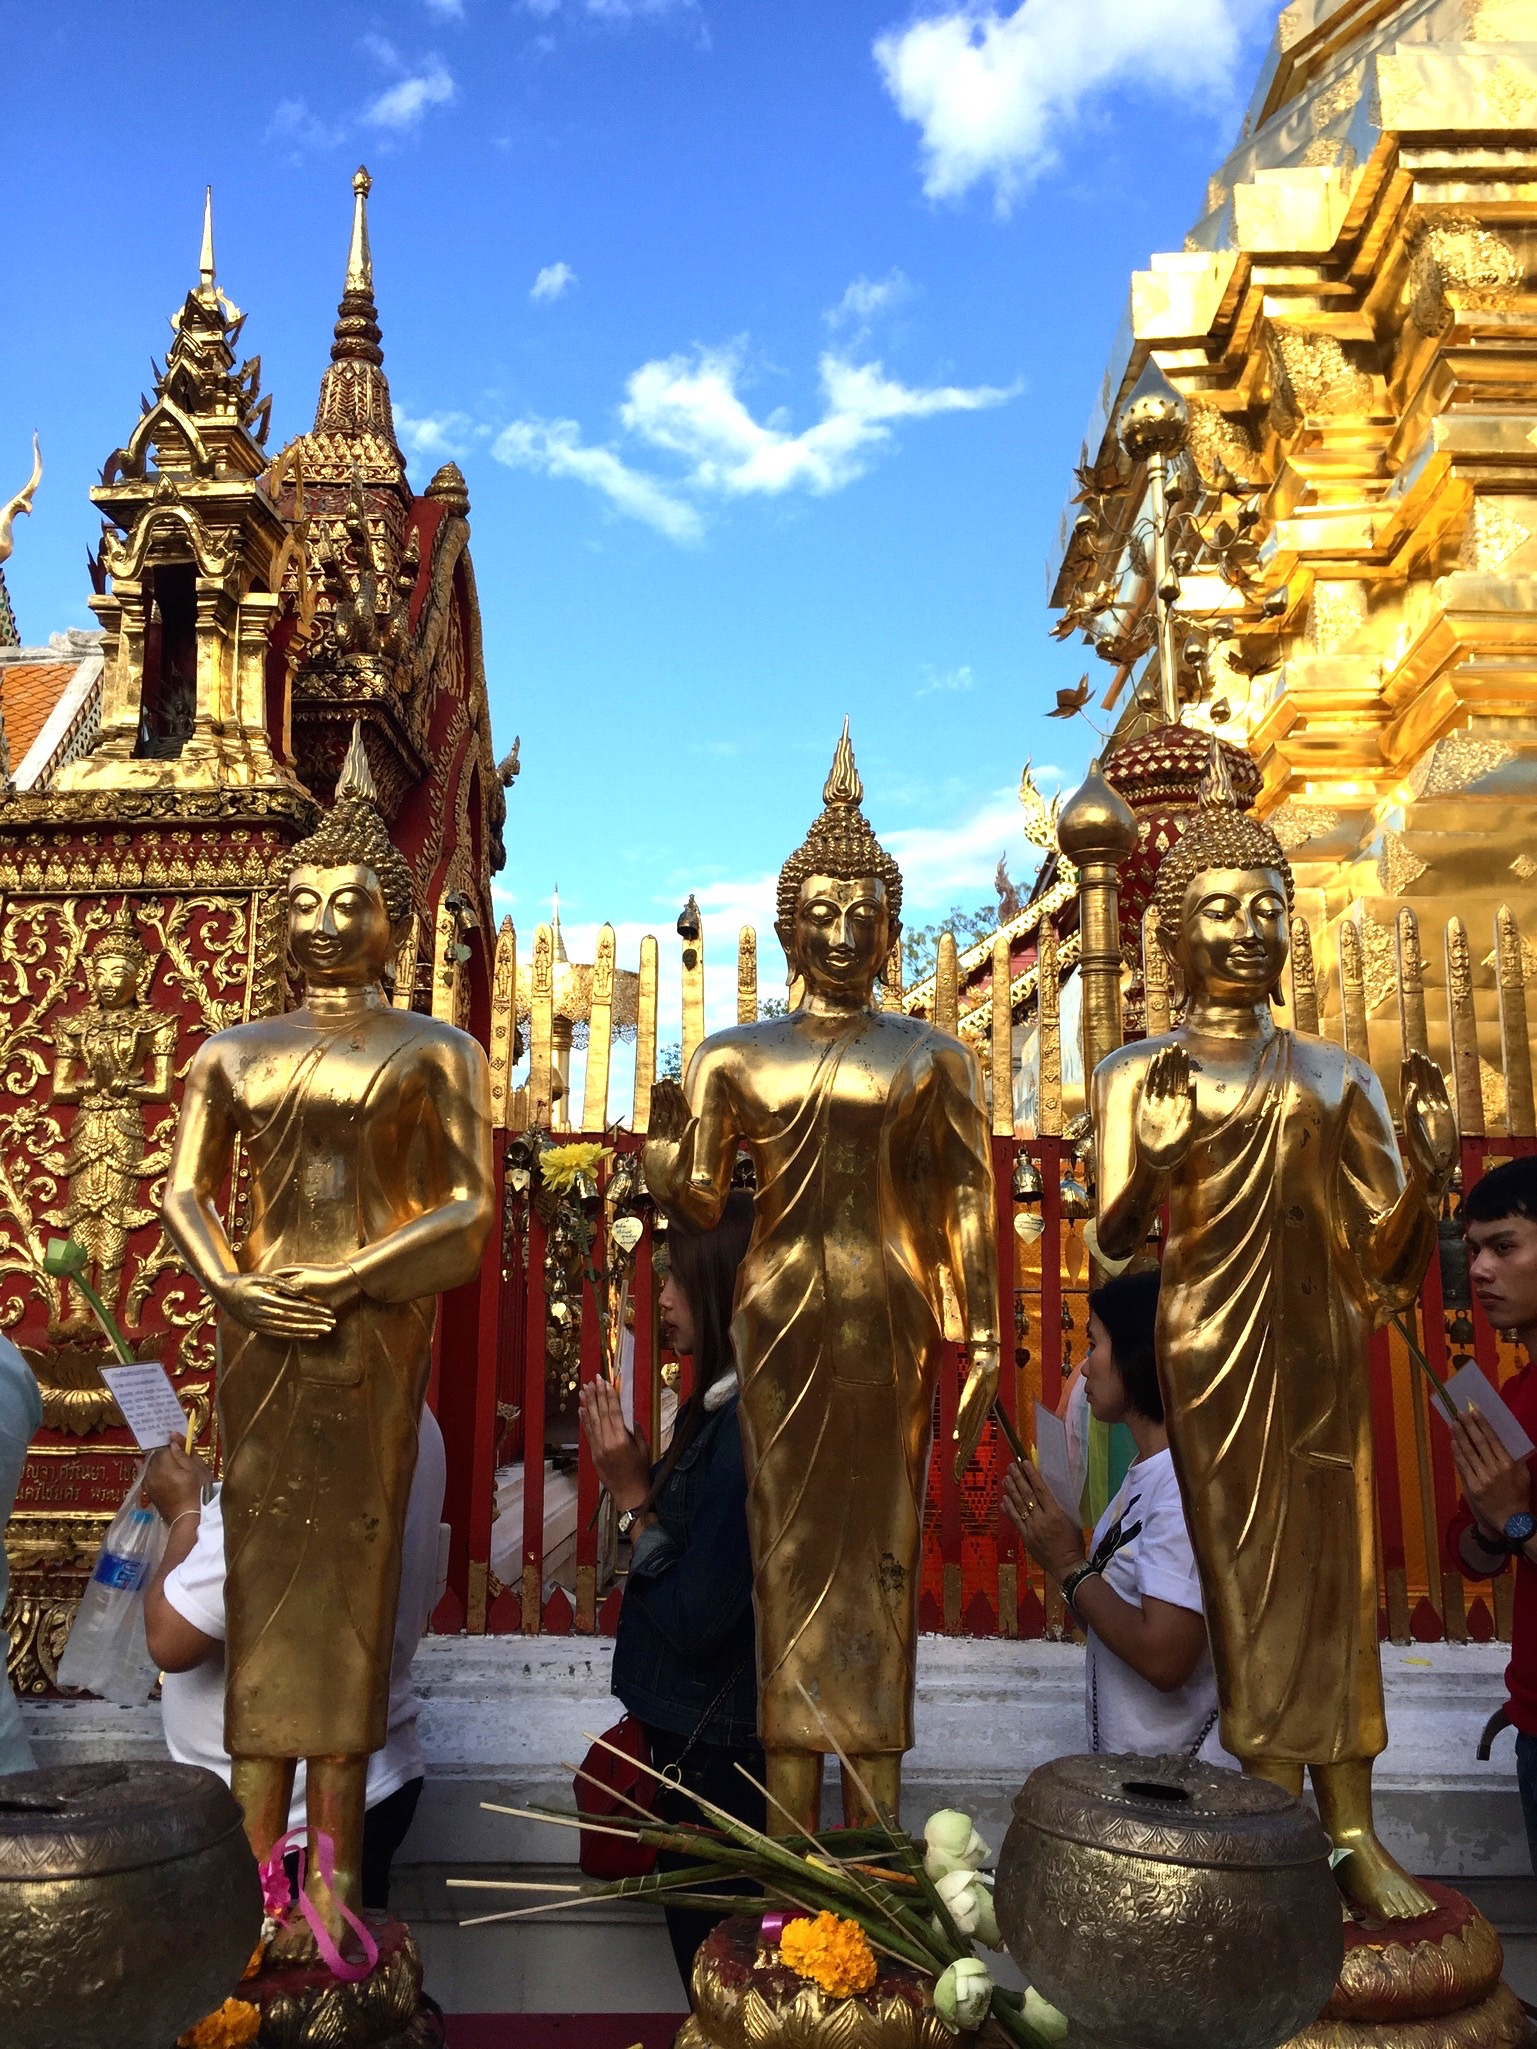 Visiting heavenly temples including Wat Pho in Bangkok and Doh Suthep in Chiang Mai.